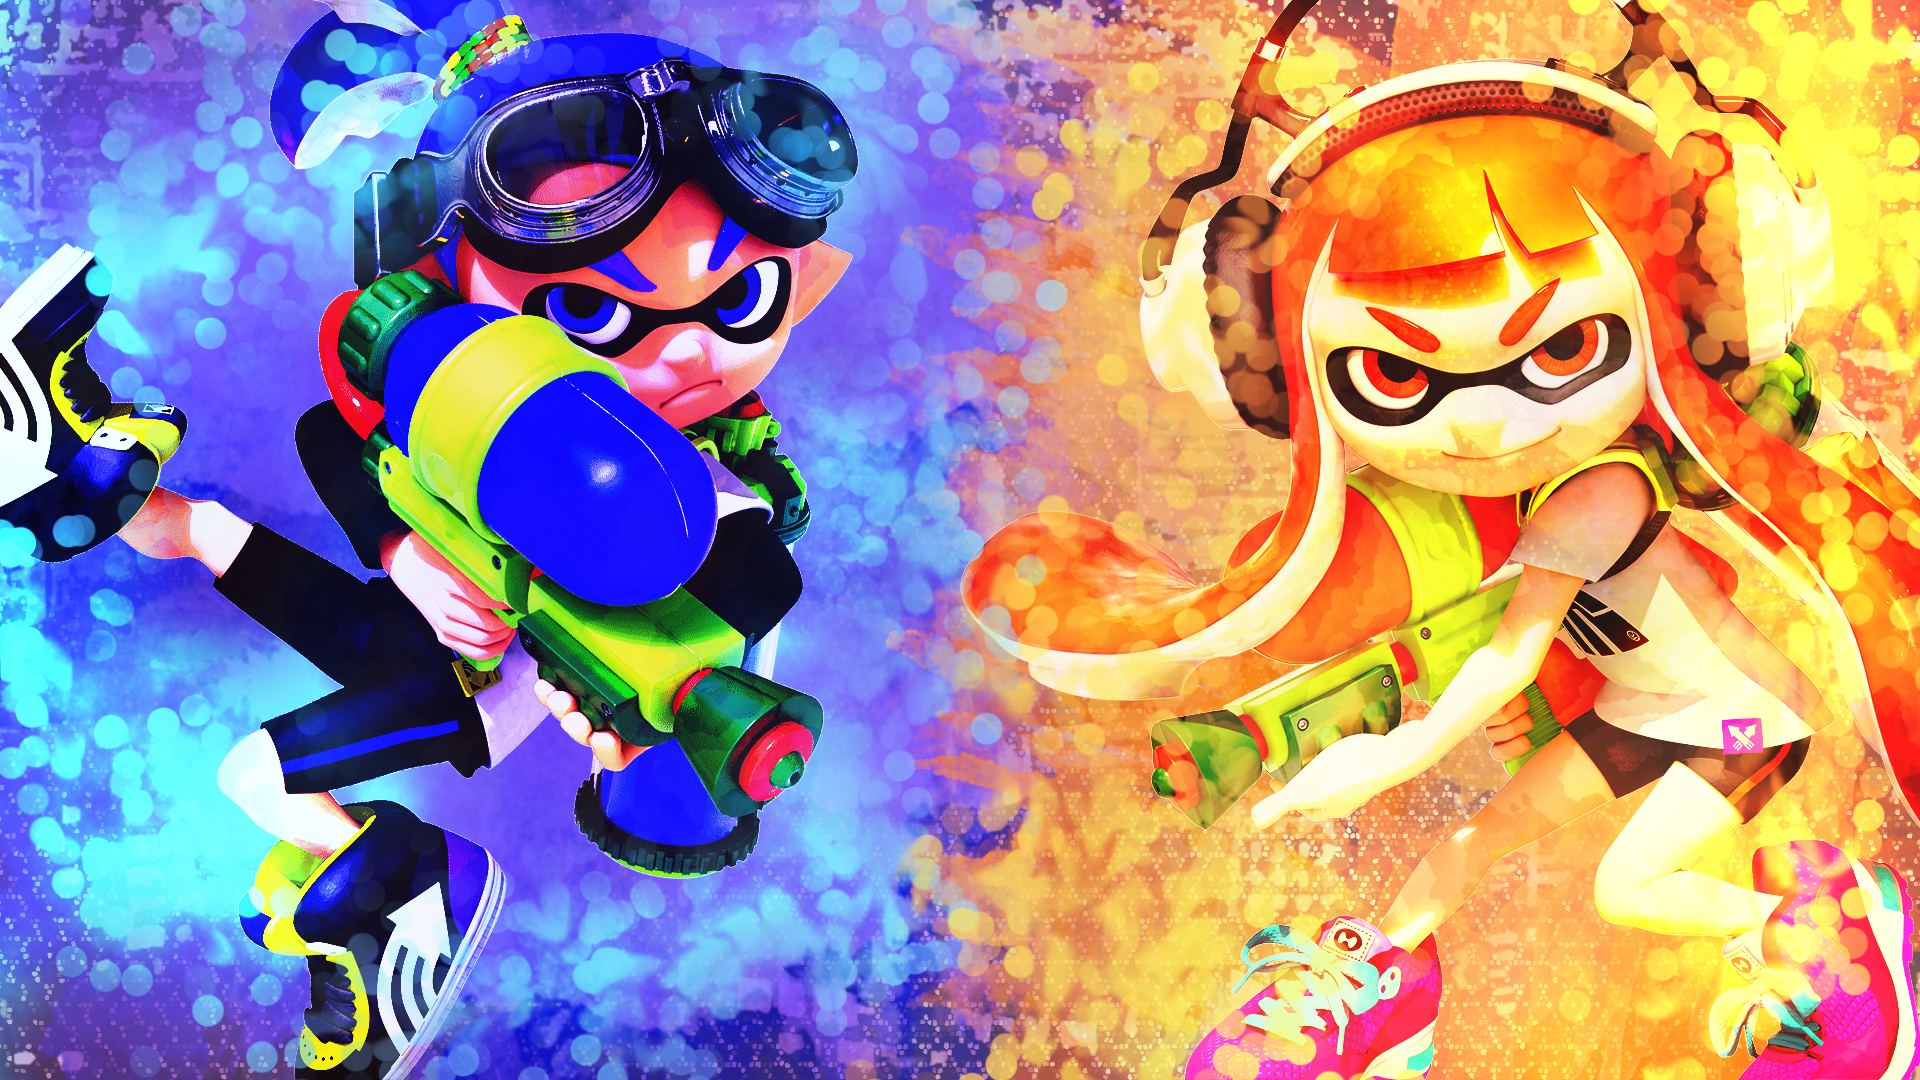 splatoon wallpaper by xxzicexx - photo #3